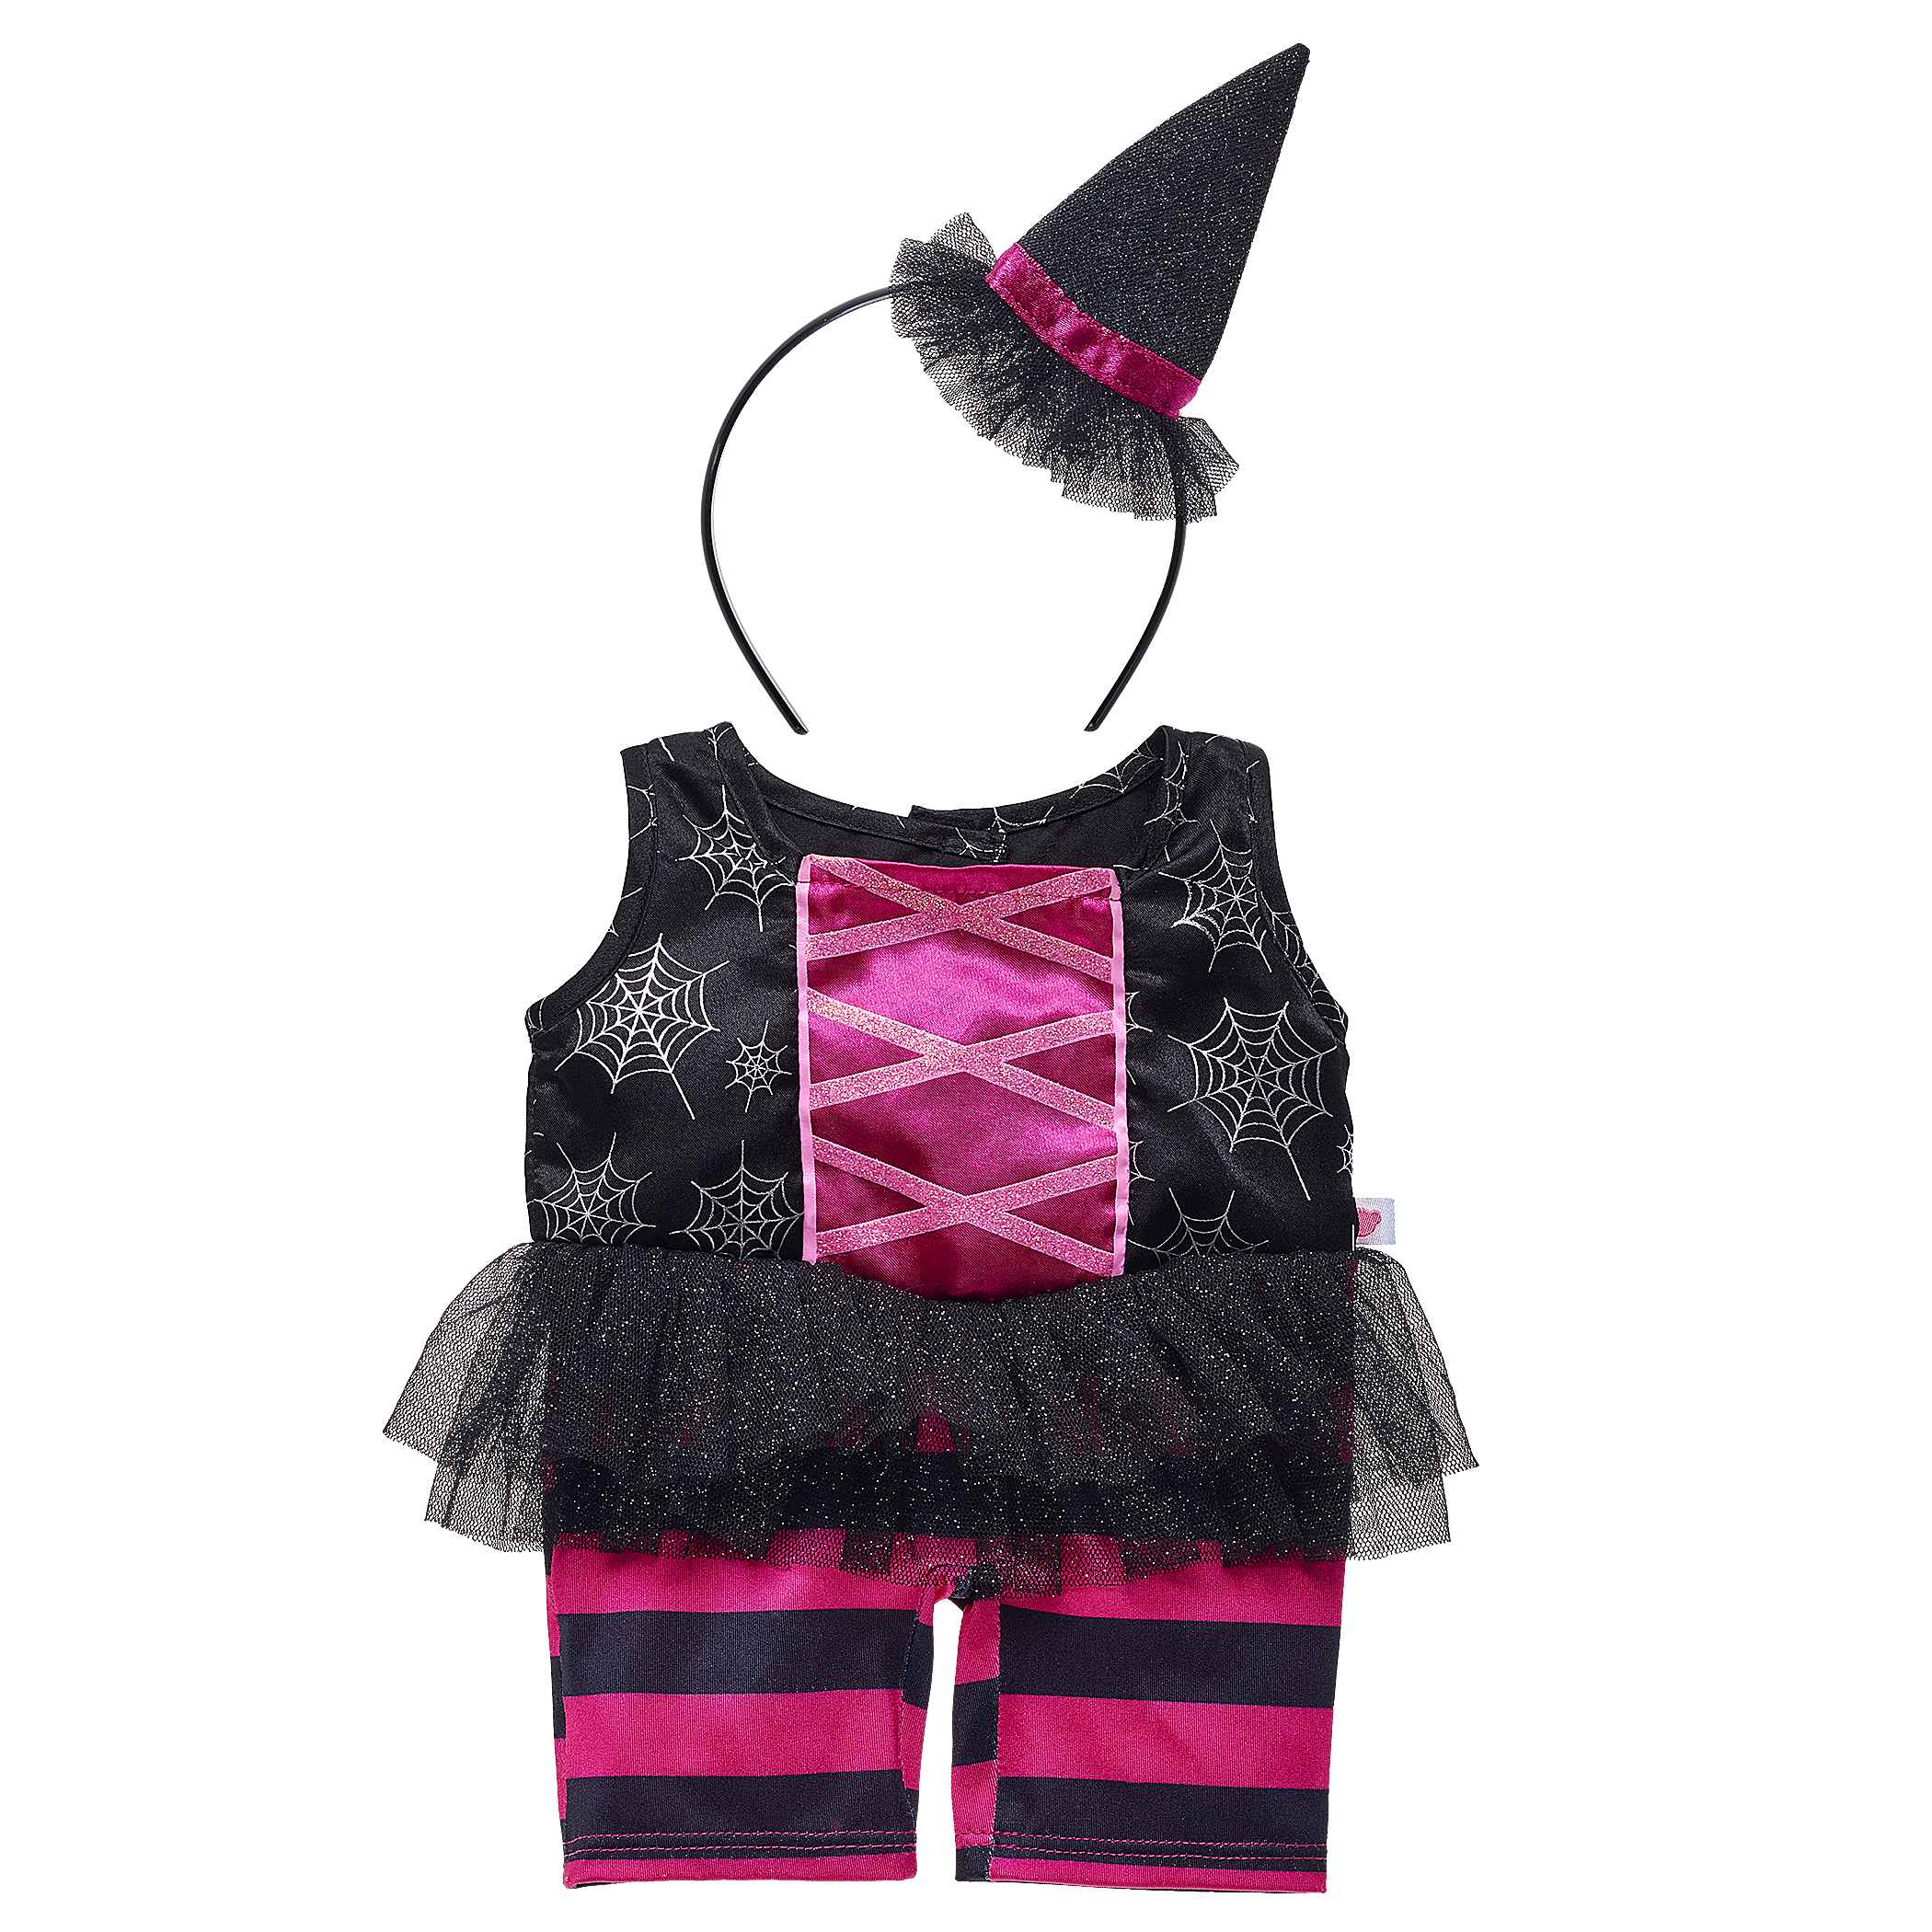 Black & Pink Witch Costume 2 pc.